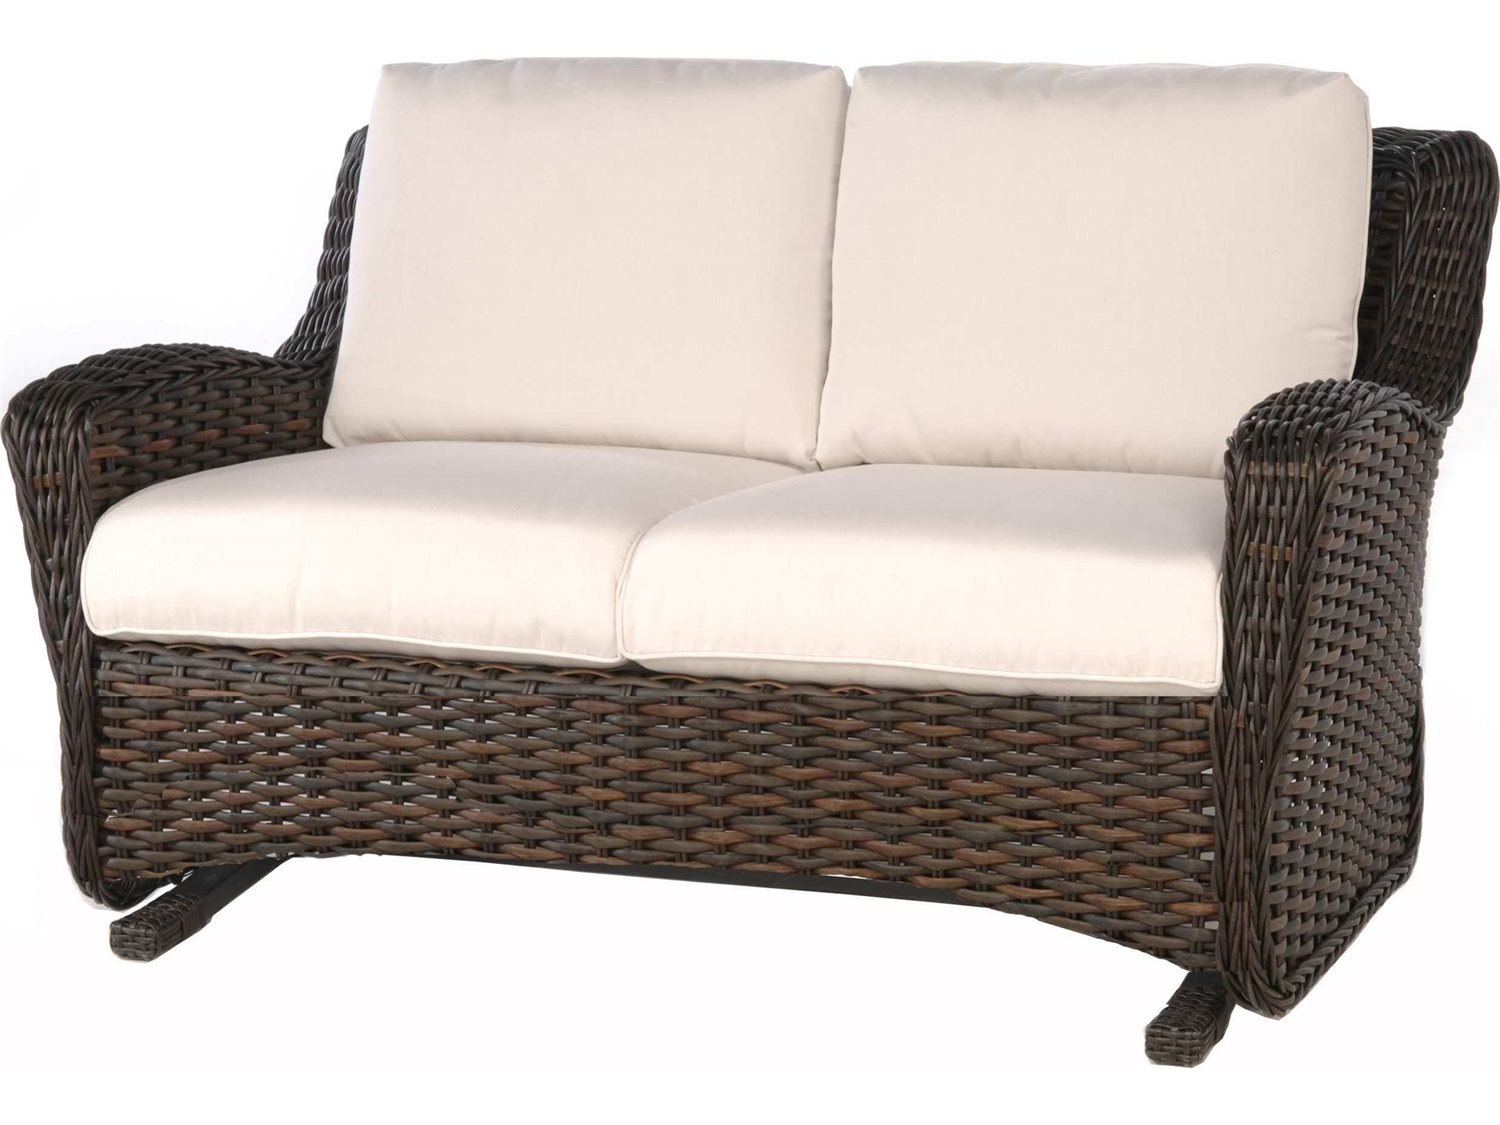 Ebel Dreux Loveseat / Loveseat Glider Replacement Cushions